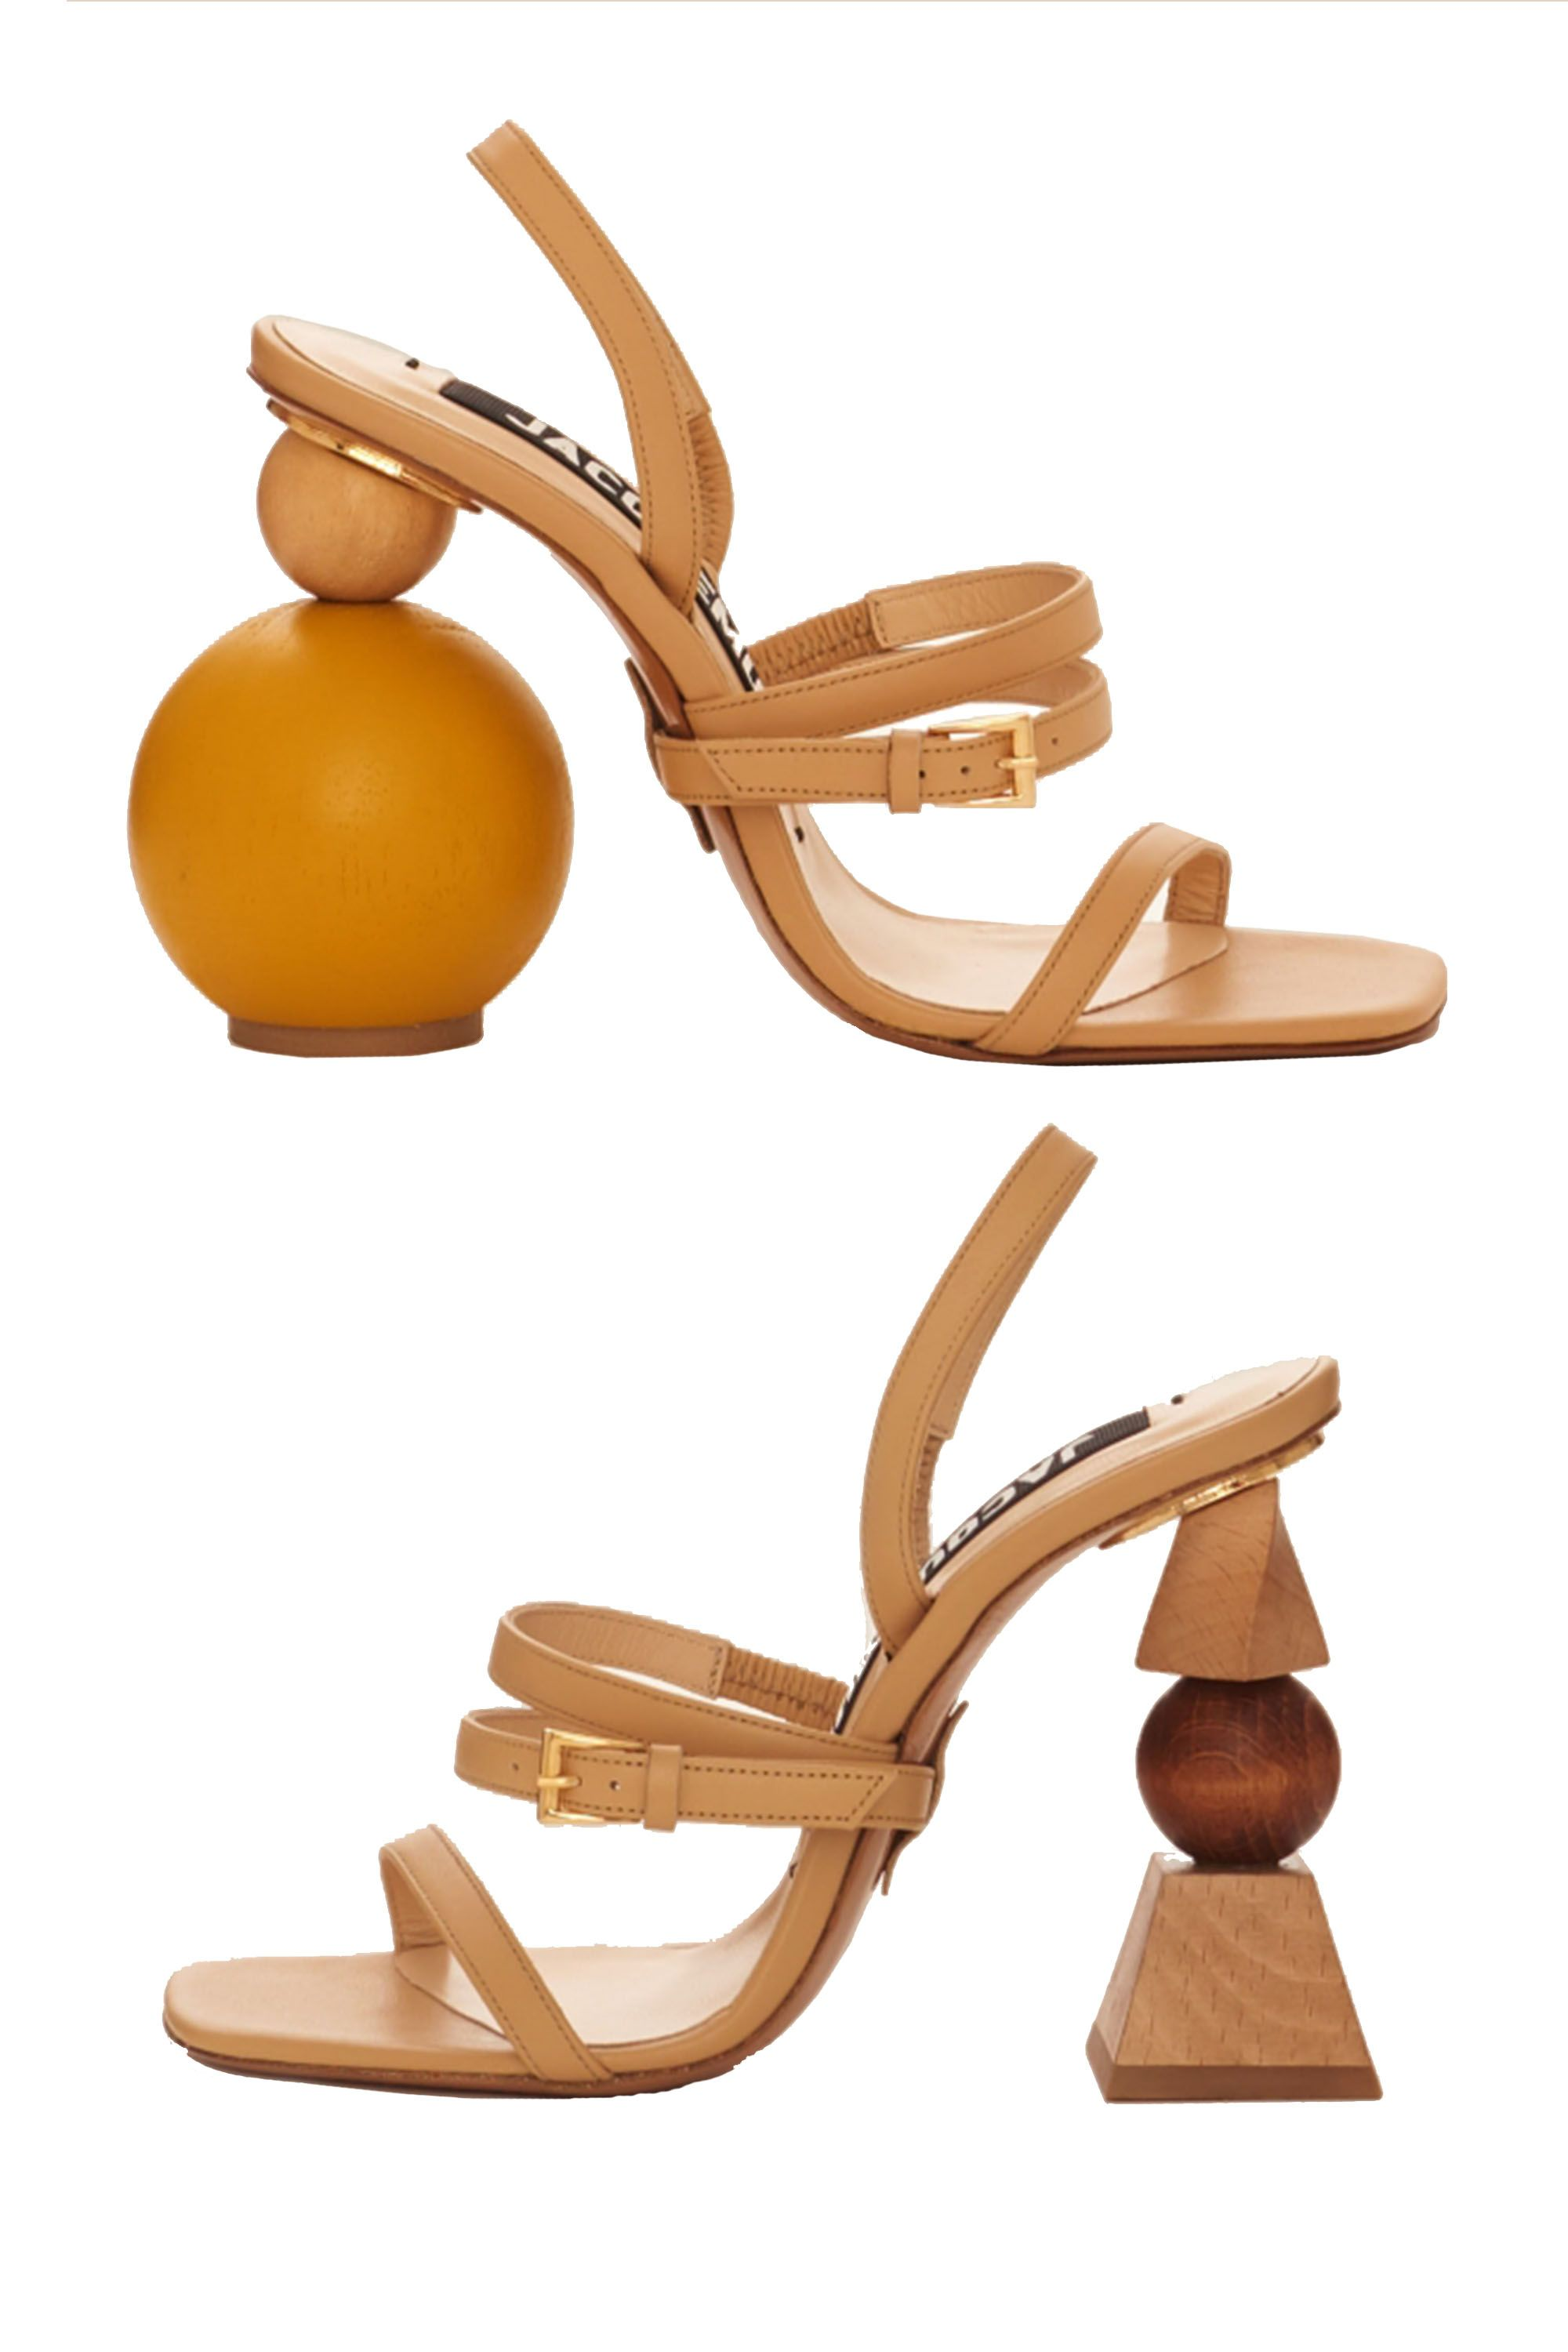 9a73a0da883 Best Summer Sandals 2018 - Trendy Sandals and Shoes for Summer